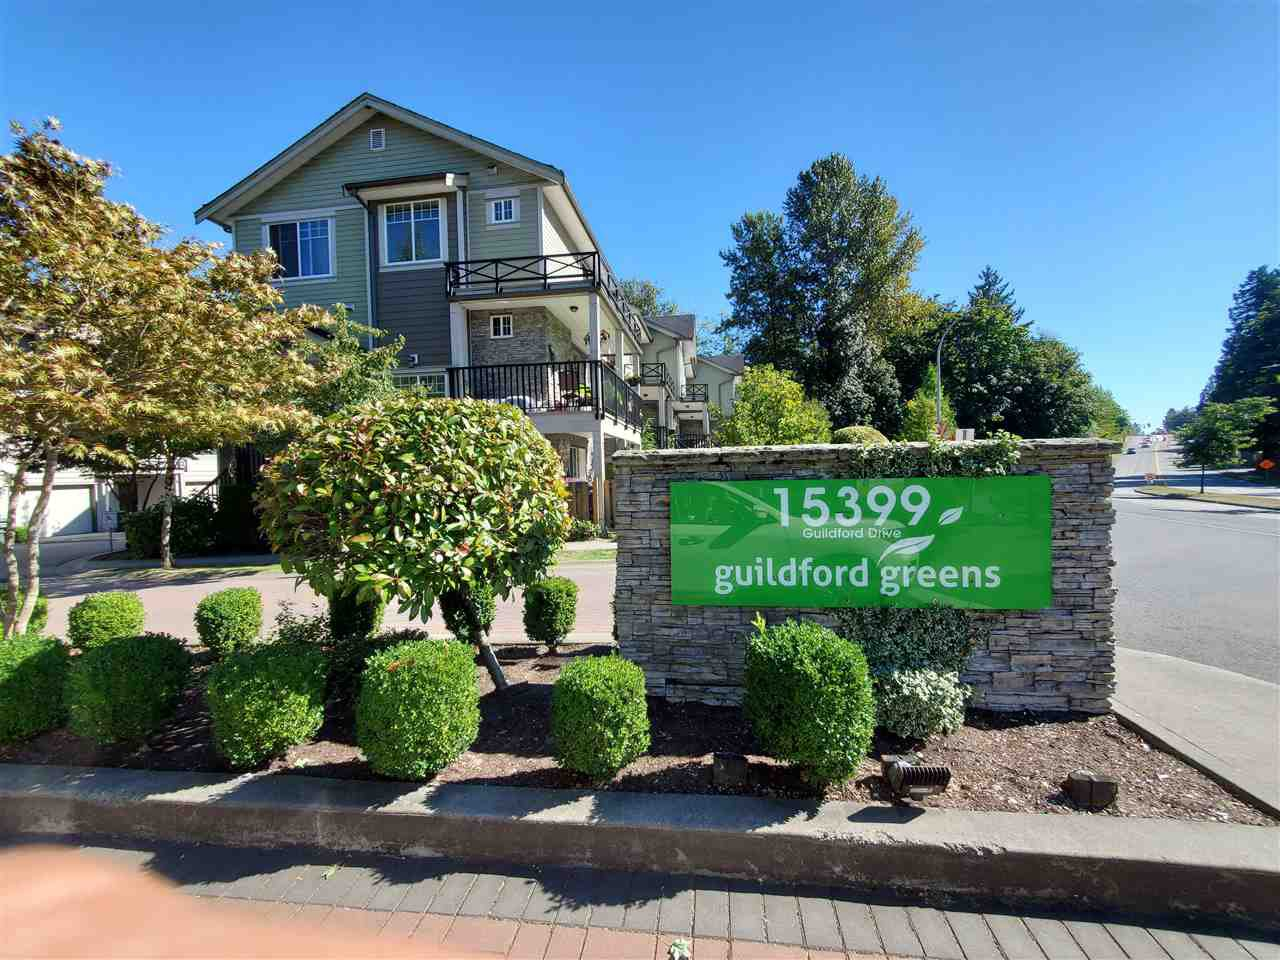 """Main Photo: 53 15399 GUILDFORD Drive in Surrey: Guildford Townhouse for sale in """"GUILDFORD GREEN"""" (North Surrey)  : MLS®# R2494863"""